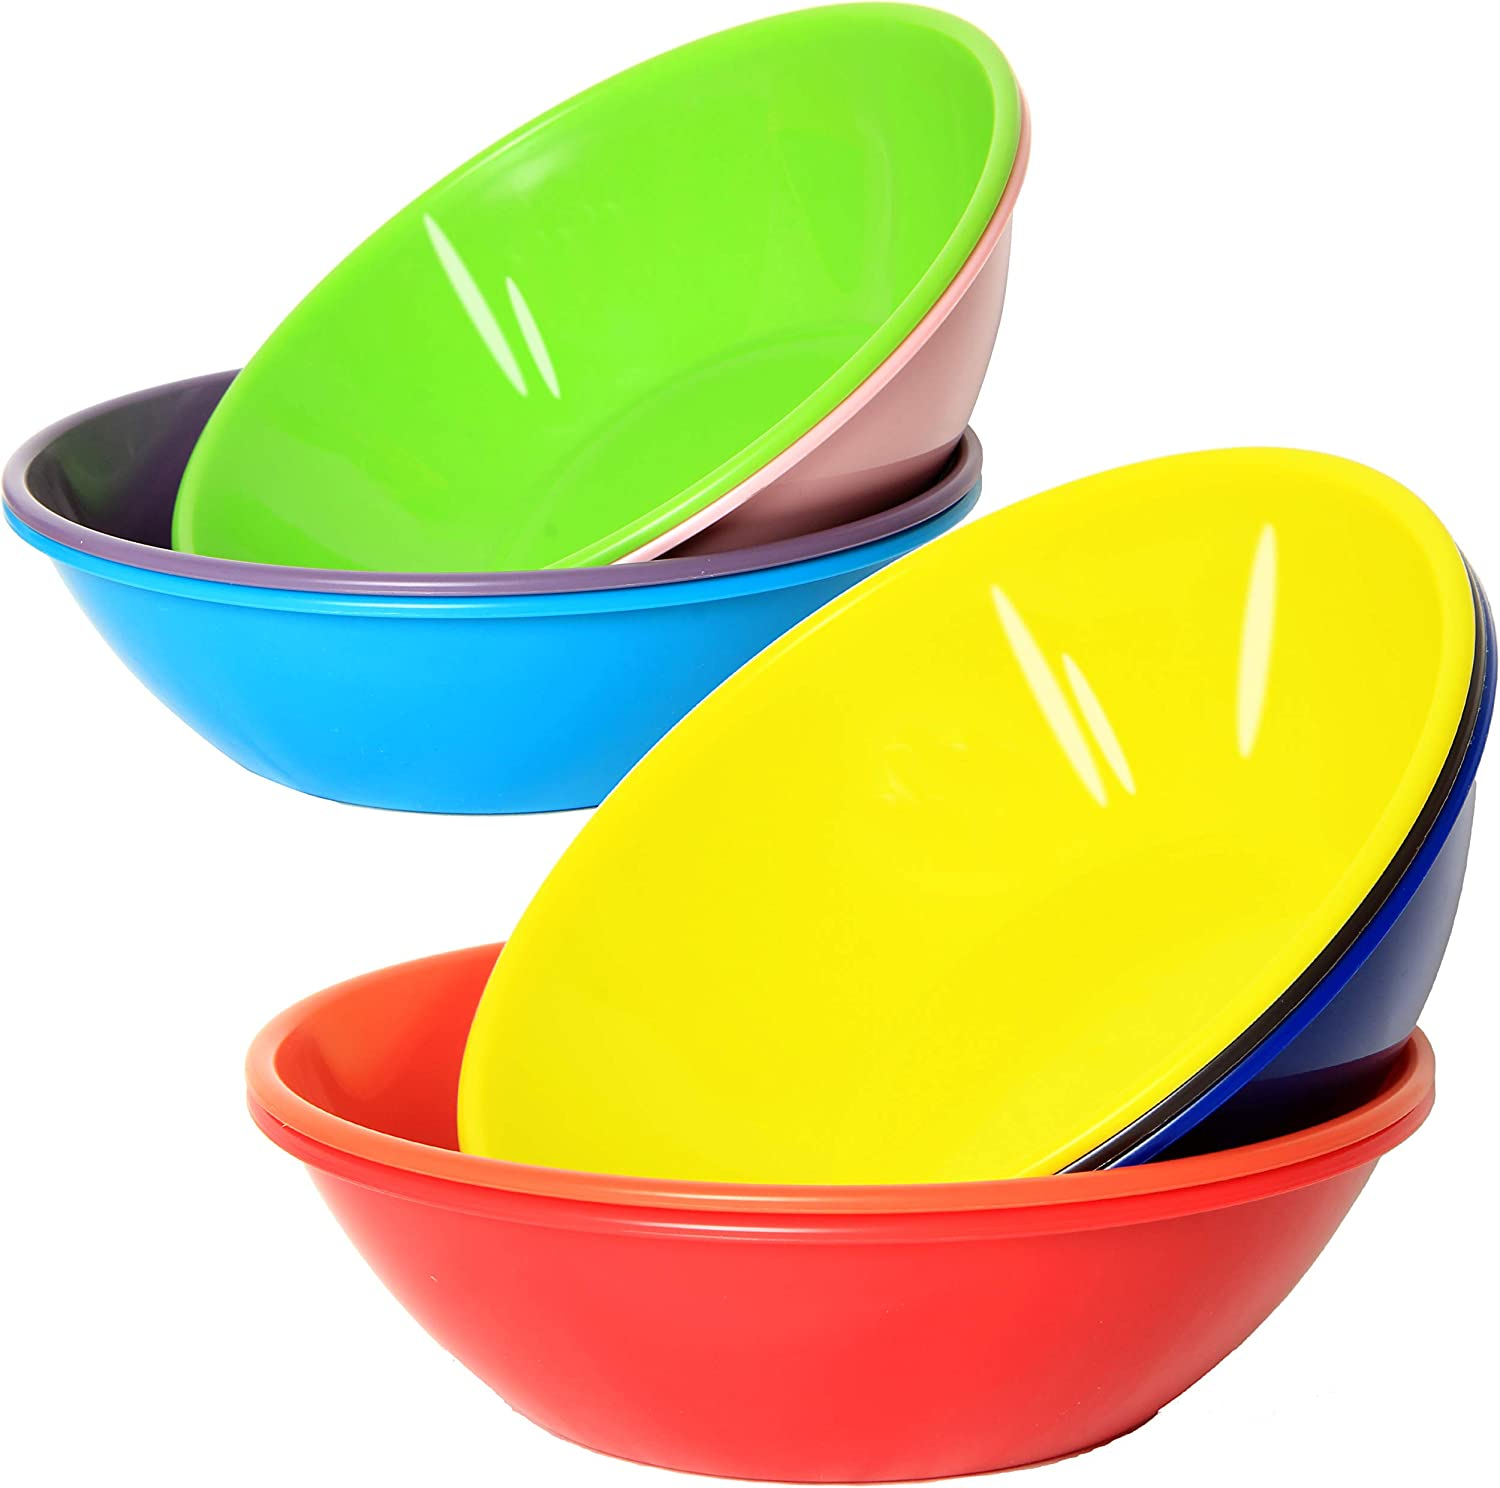 Youngever 28 Ounce Plastic Bowls, Large Cereal Bowls, for Cereal, Soup or Salad, Microwave Safe, Dishwasher Safe, Set of 9 in 9 Assorted Colors